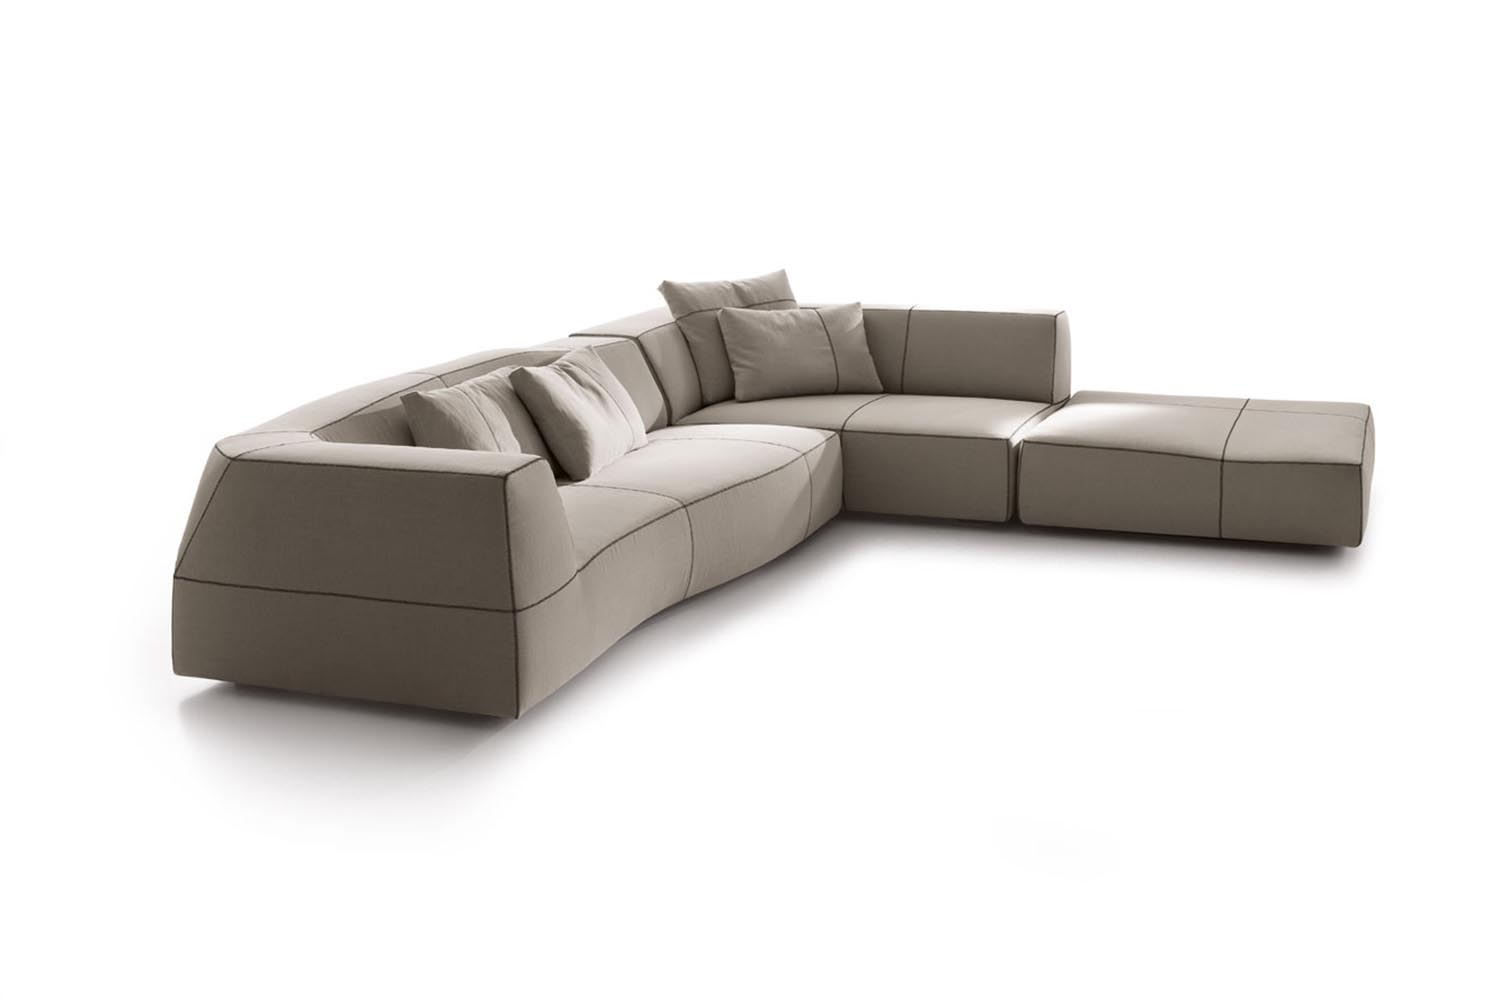 Maxalto Sofa Rund Bend Sofa By Patricia Urquiola For B Andb Italia Space